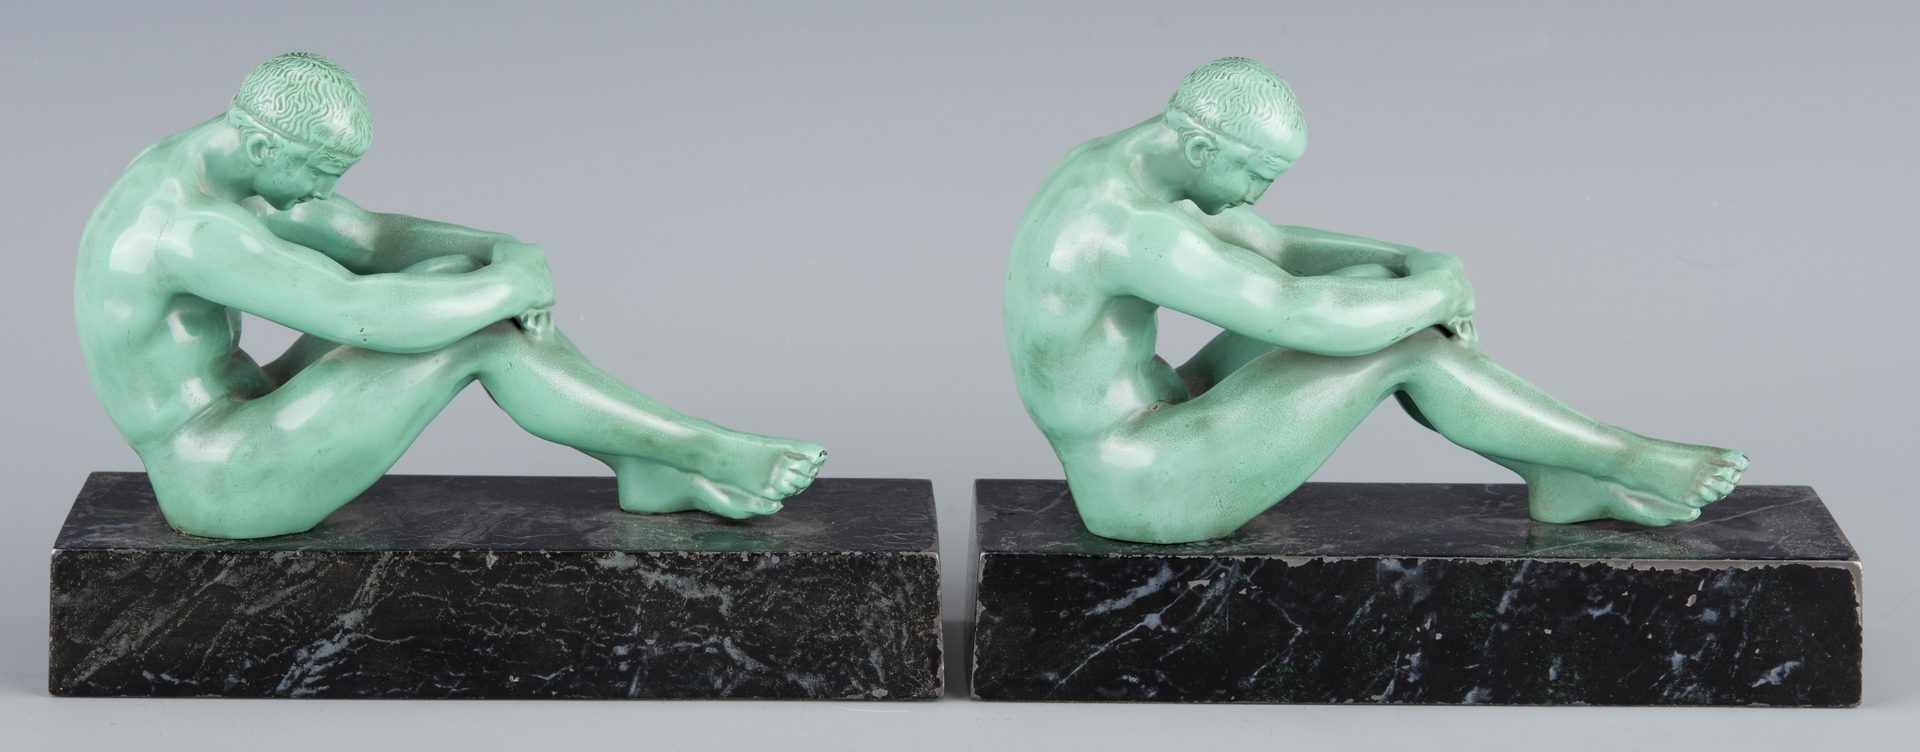 Lot 142: Dodge Sterling Awards w/ Art Deco bookends